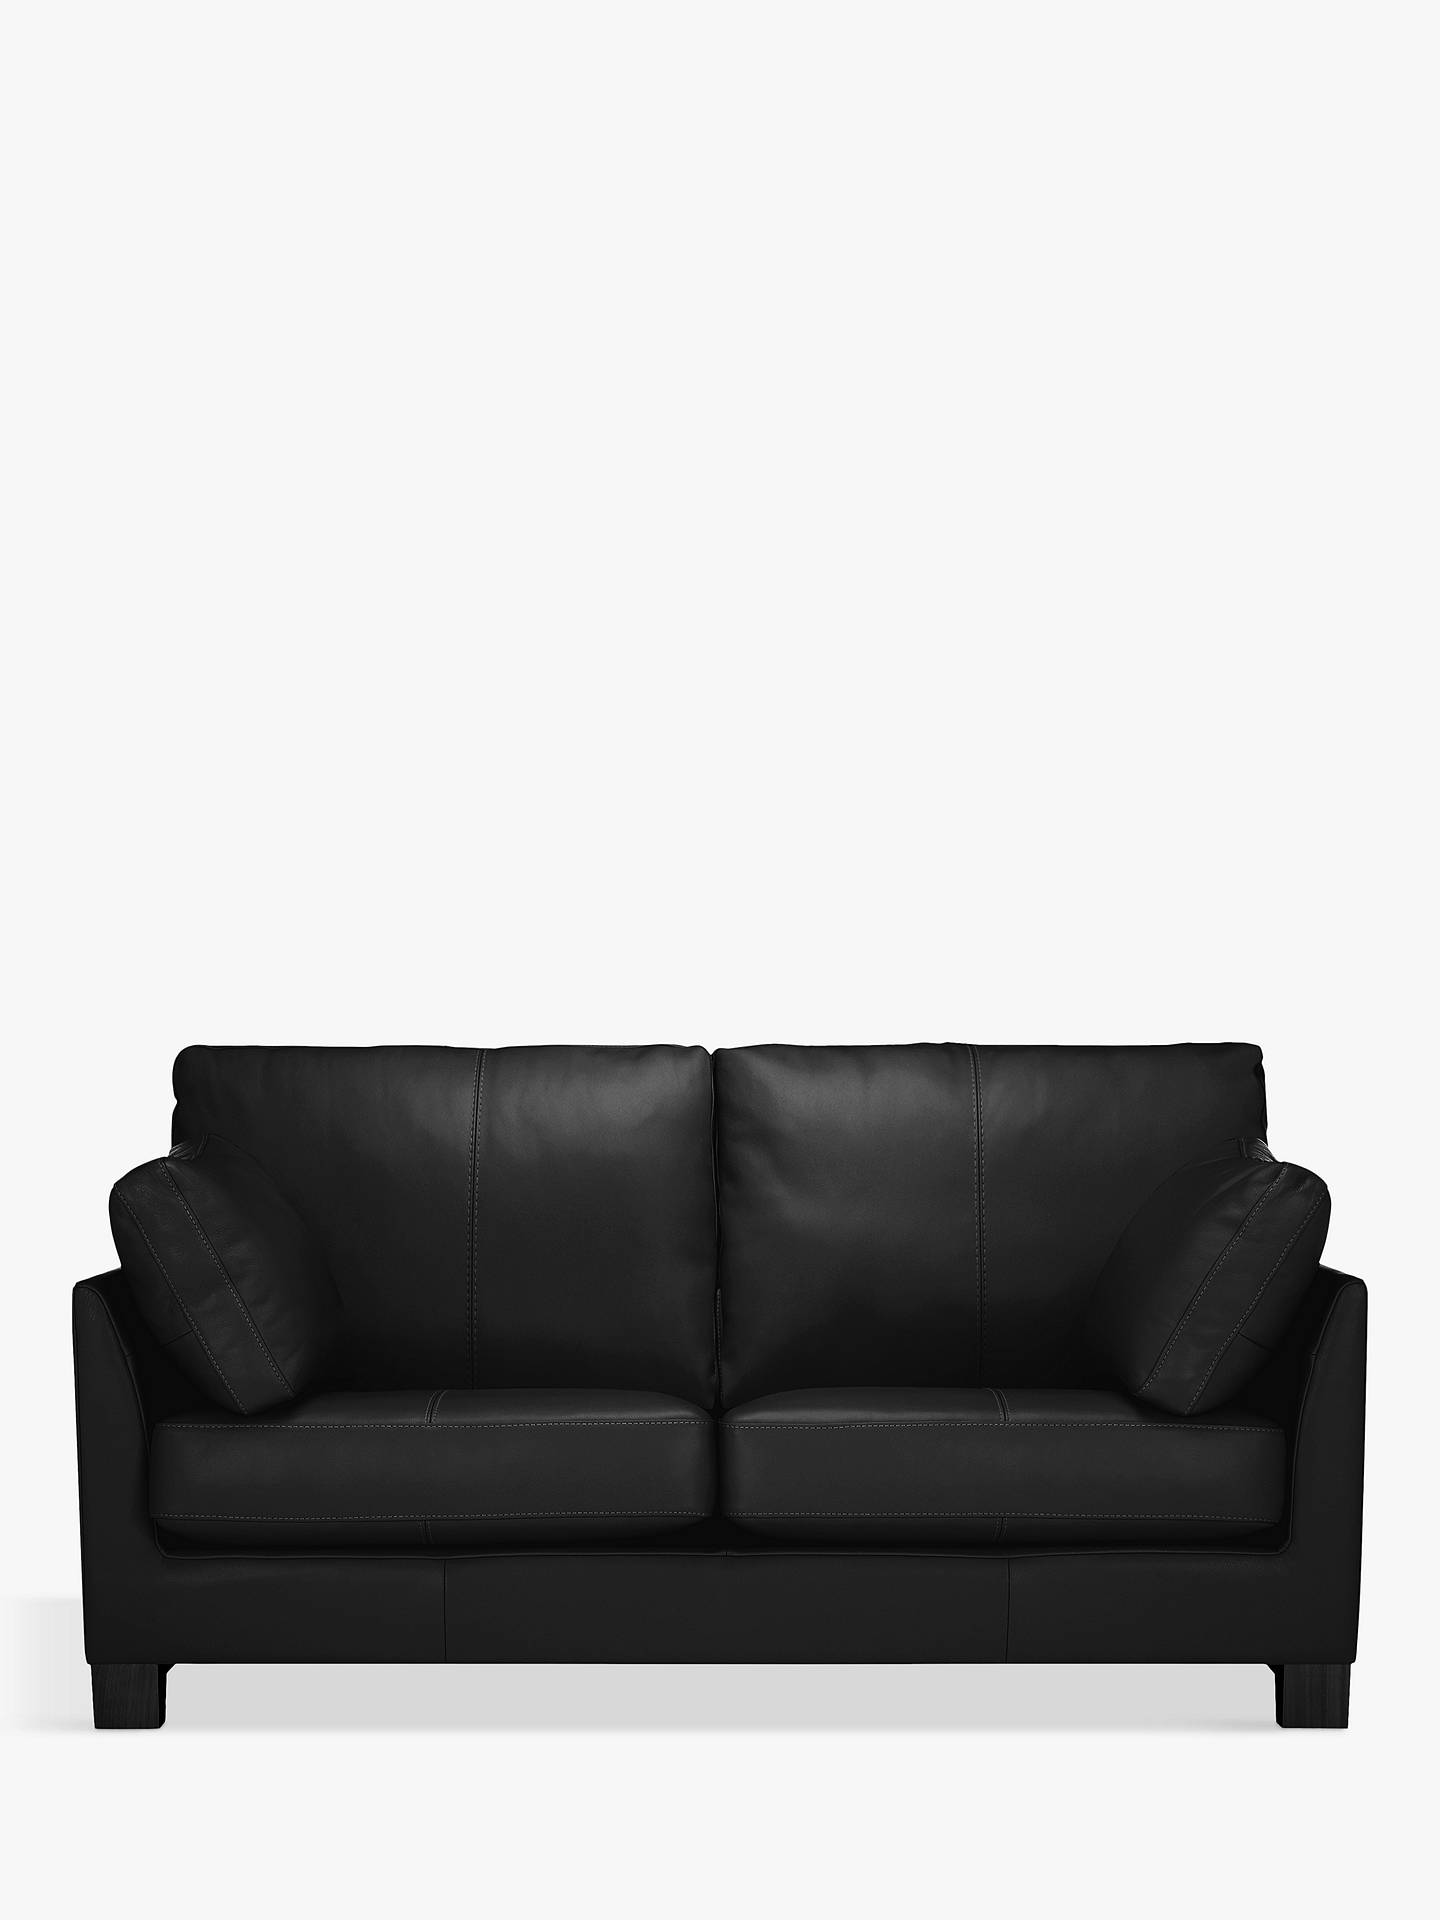 John Lewis & Partners Ikon Medium 2 Seater Leather Sofa, Dark Leg, Contempo  Black